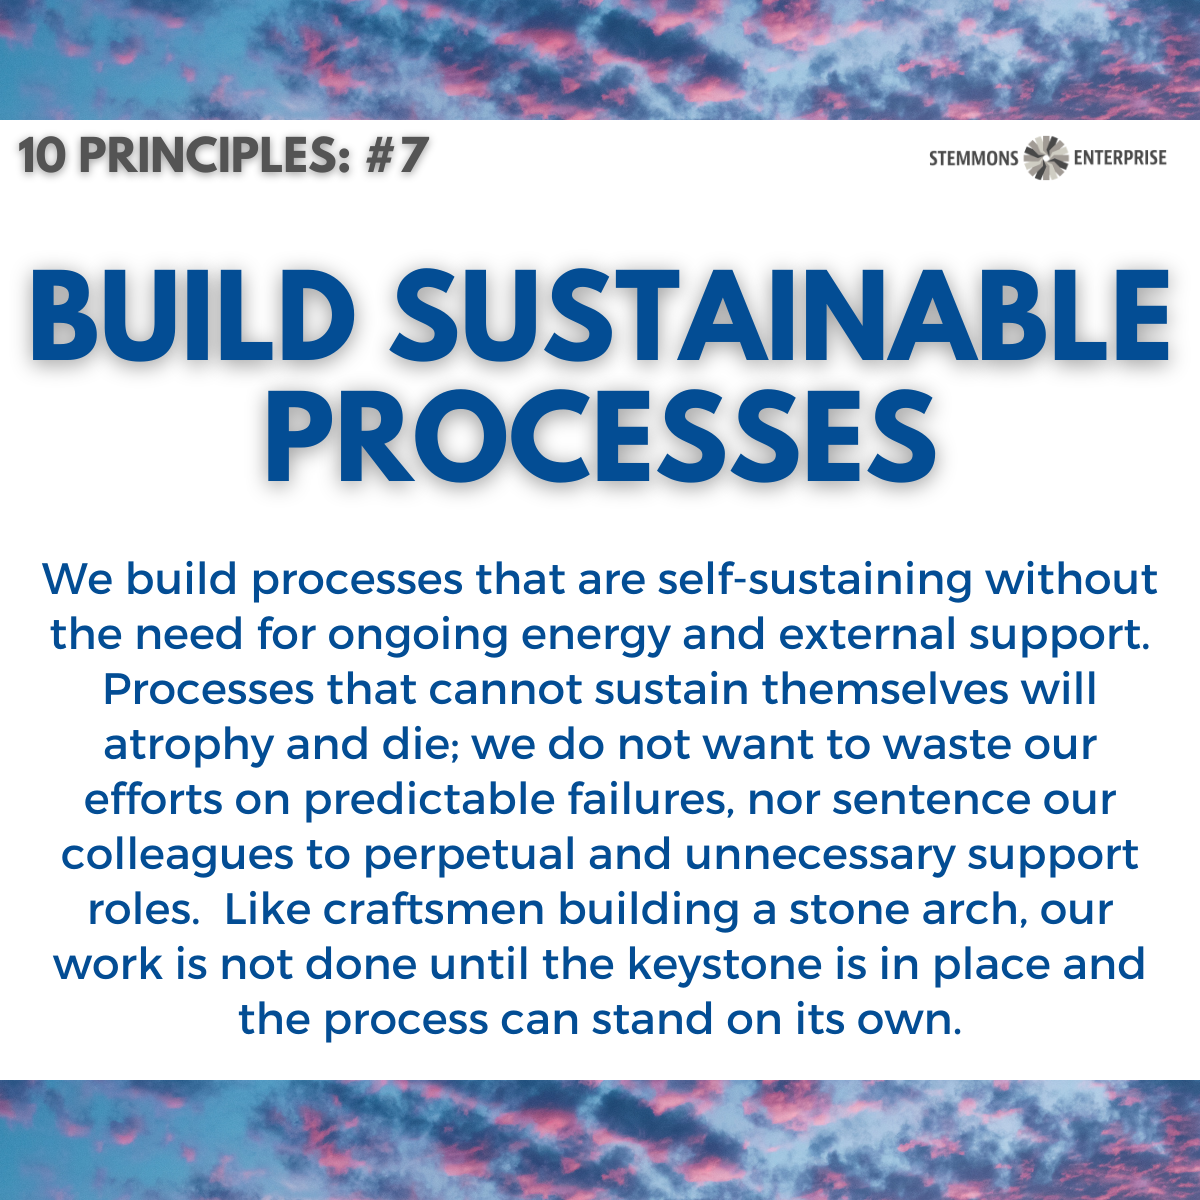 Build Sustainable Processes